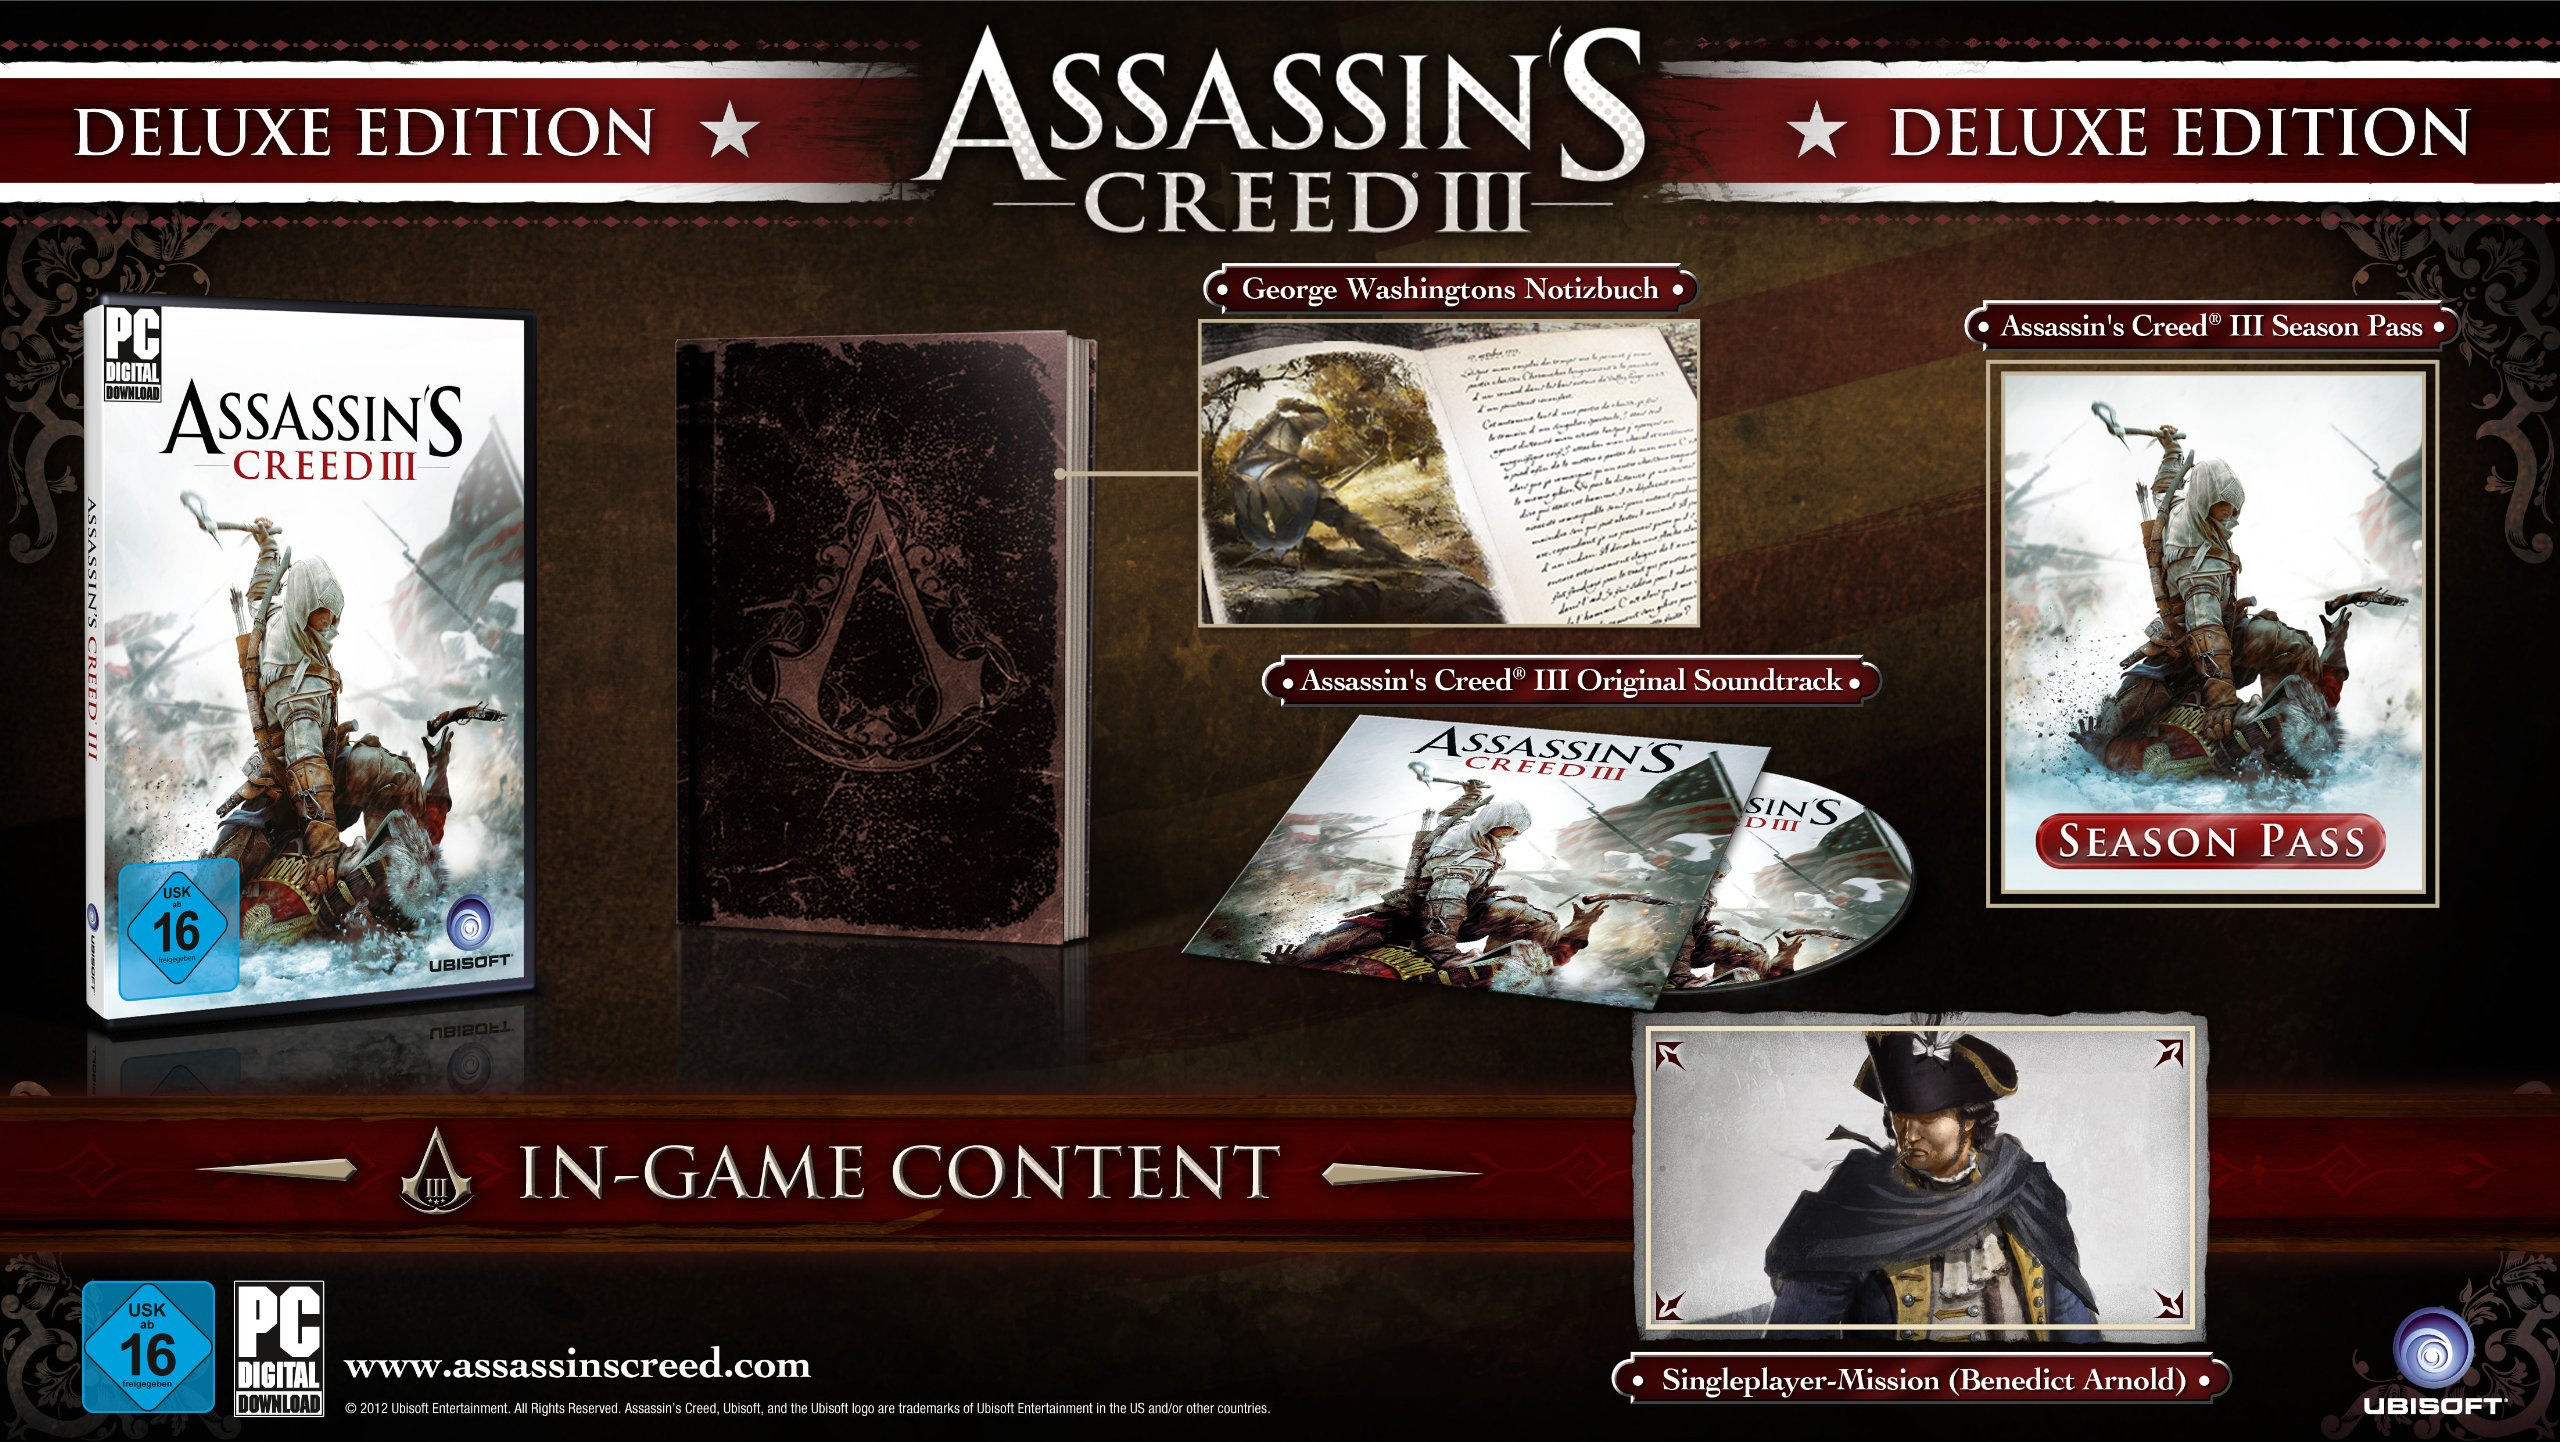 Assassin's creed 3 pc deluxe edition steam pre-order is it worth.